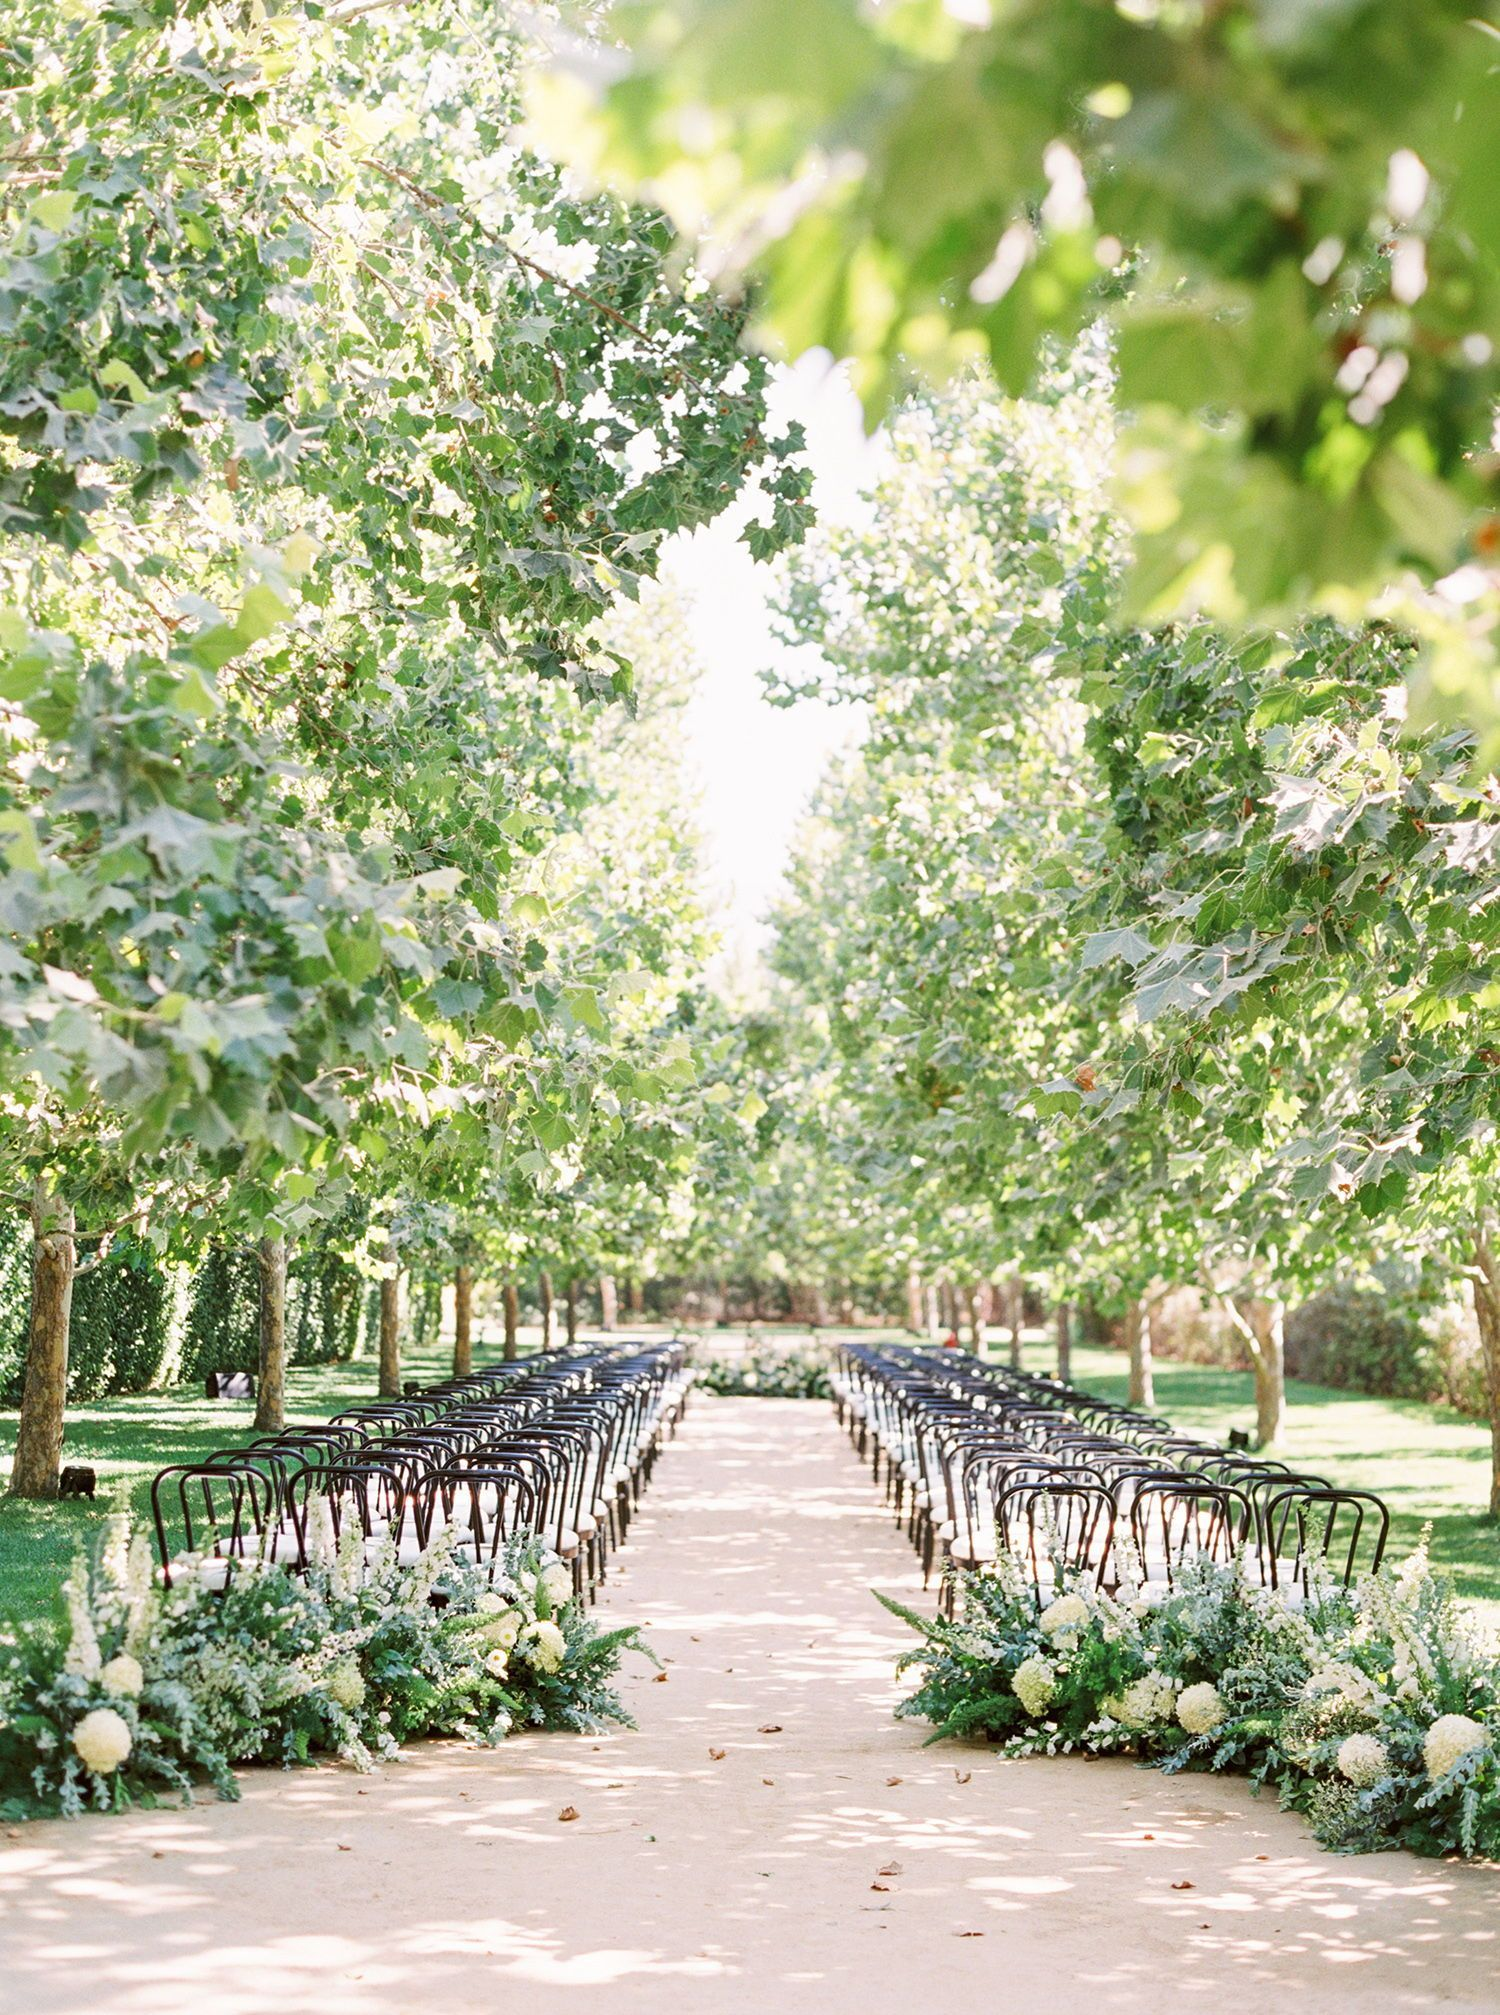 This wedding ceremony was held in the most beautiful wedding venue  with green trees and flowers surrounding it was absolutely romantic and beautiful The summer is partic...